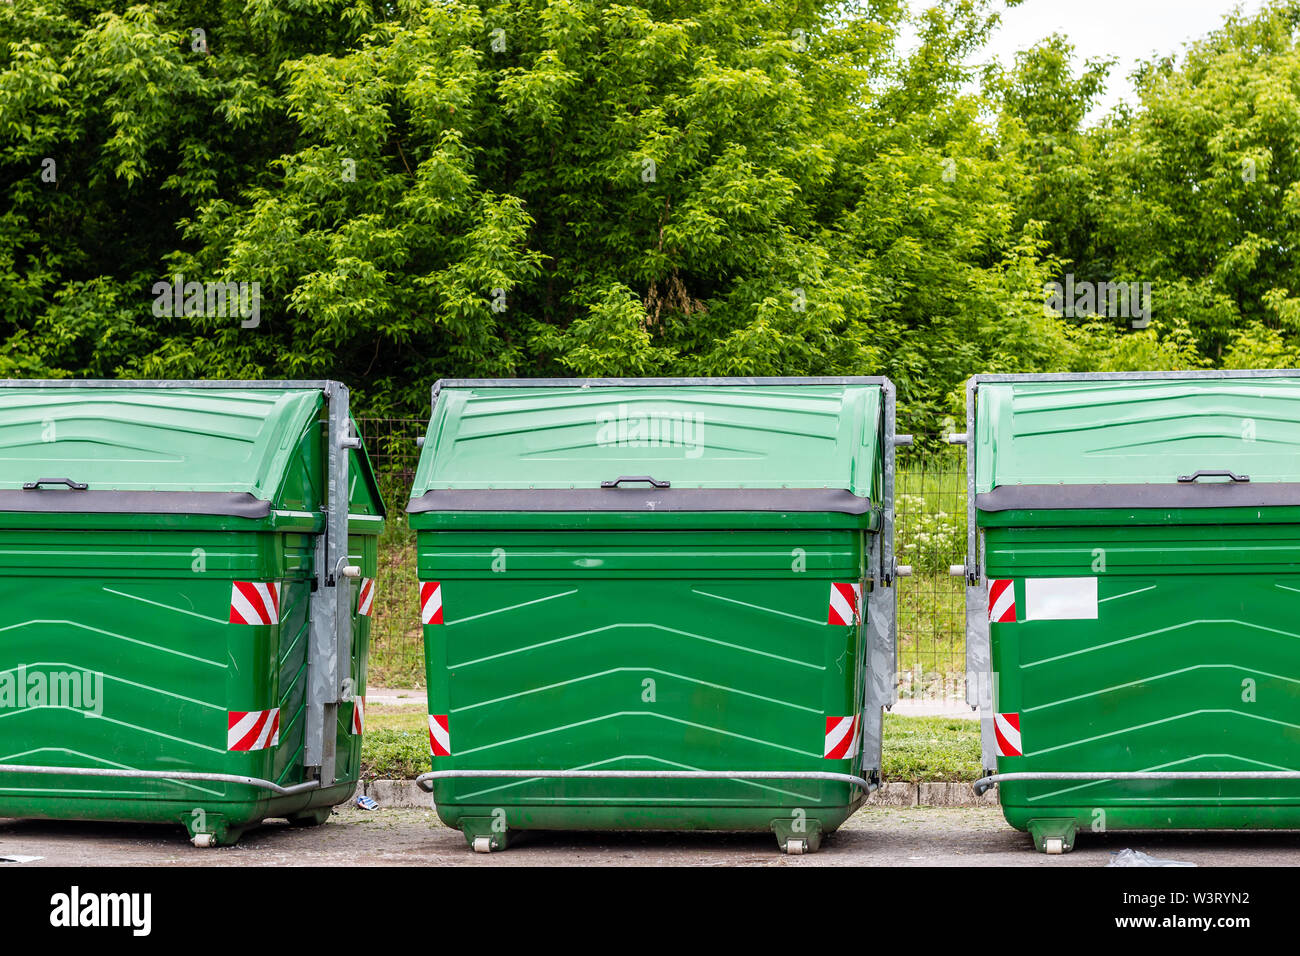 Three green recycle bins in row, outdoors. Environment and pollution concept. - Stock Image